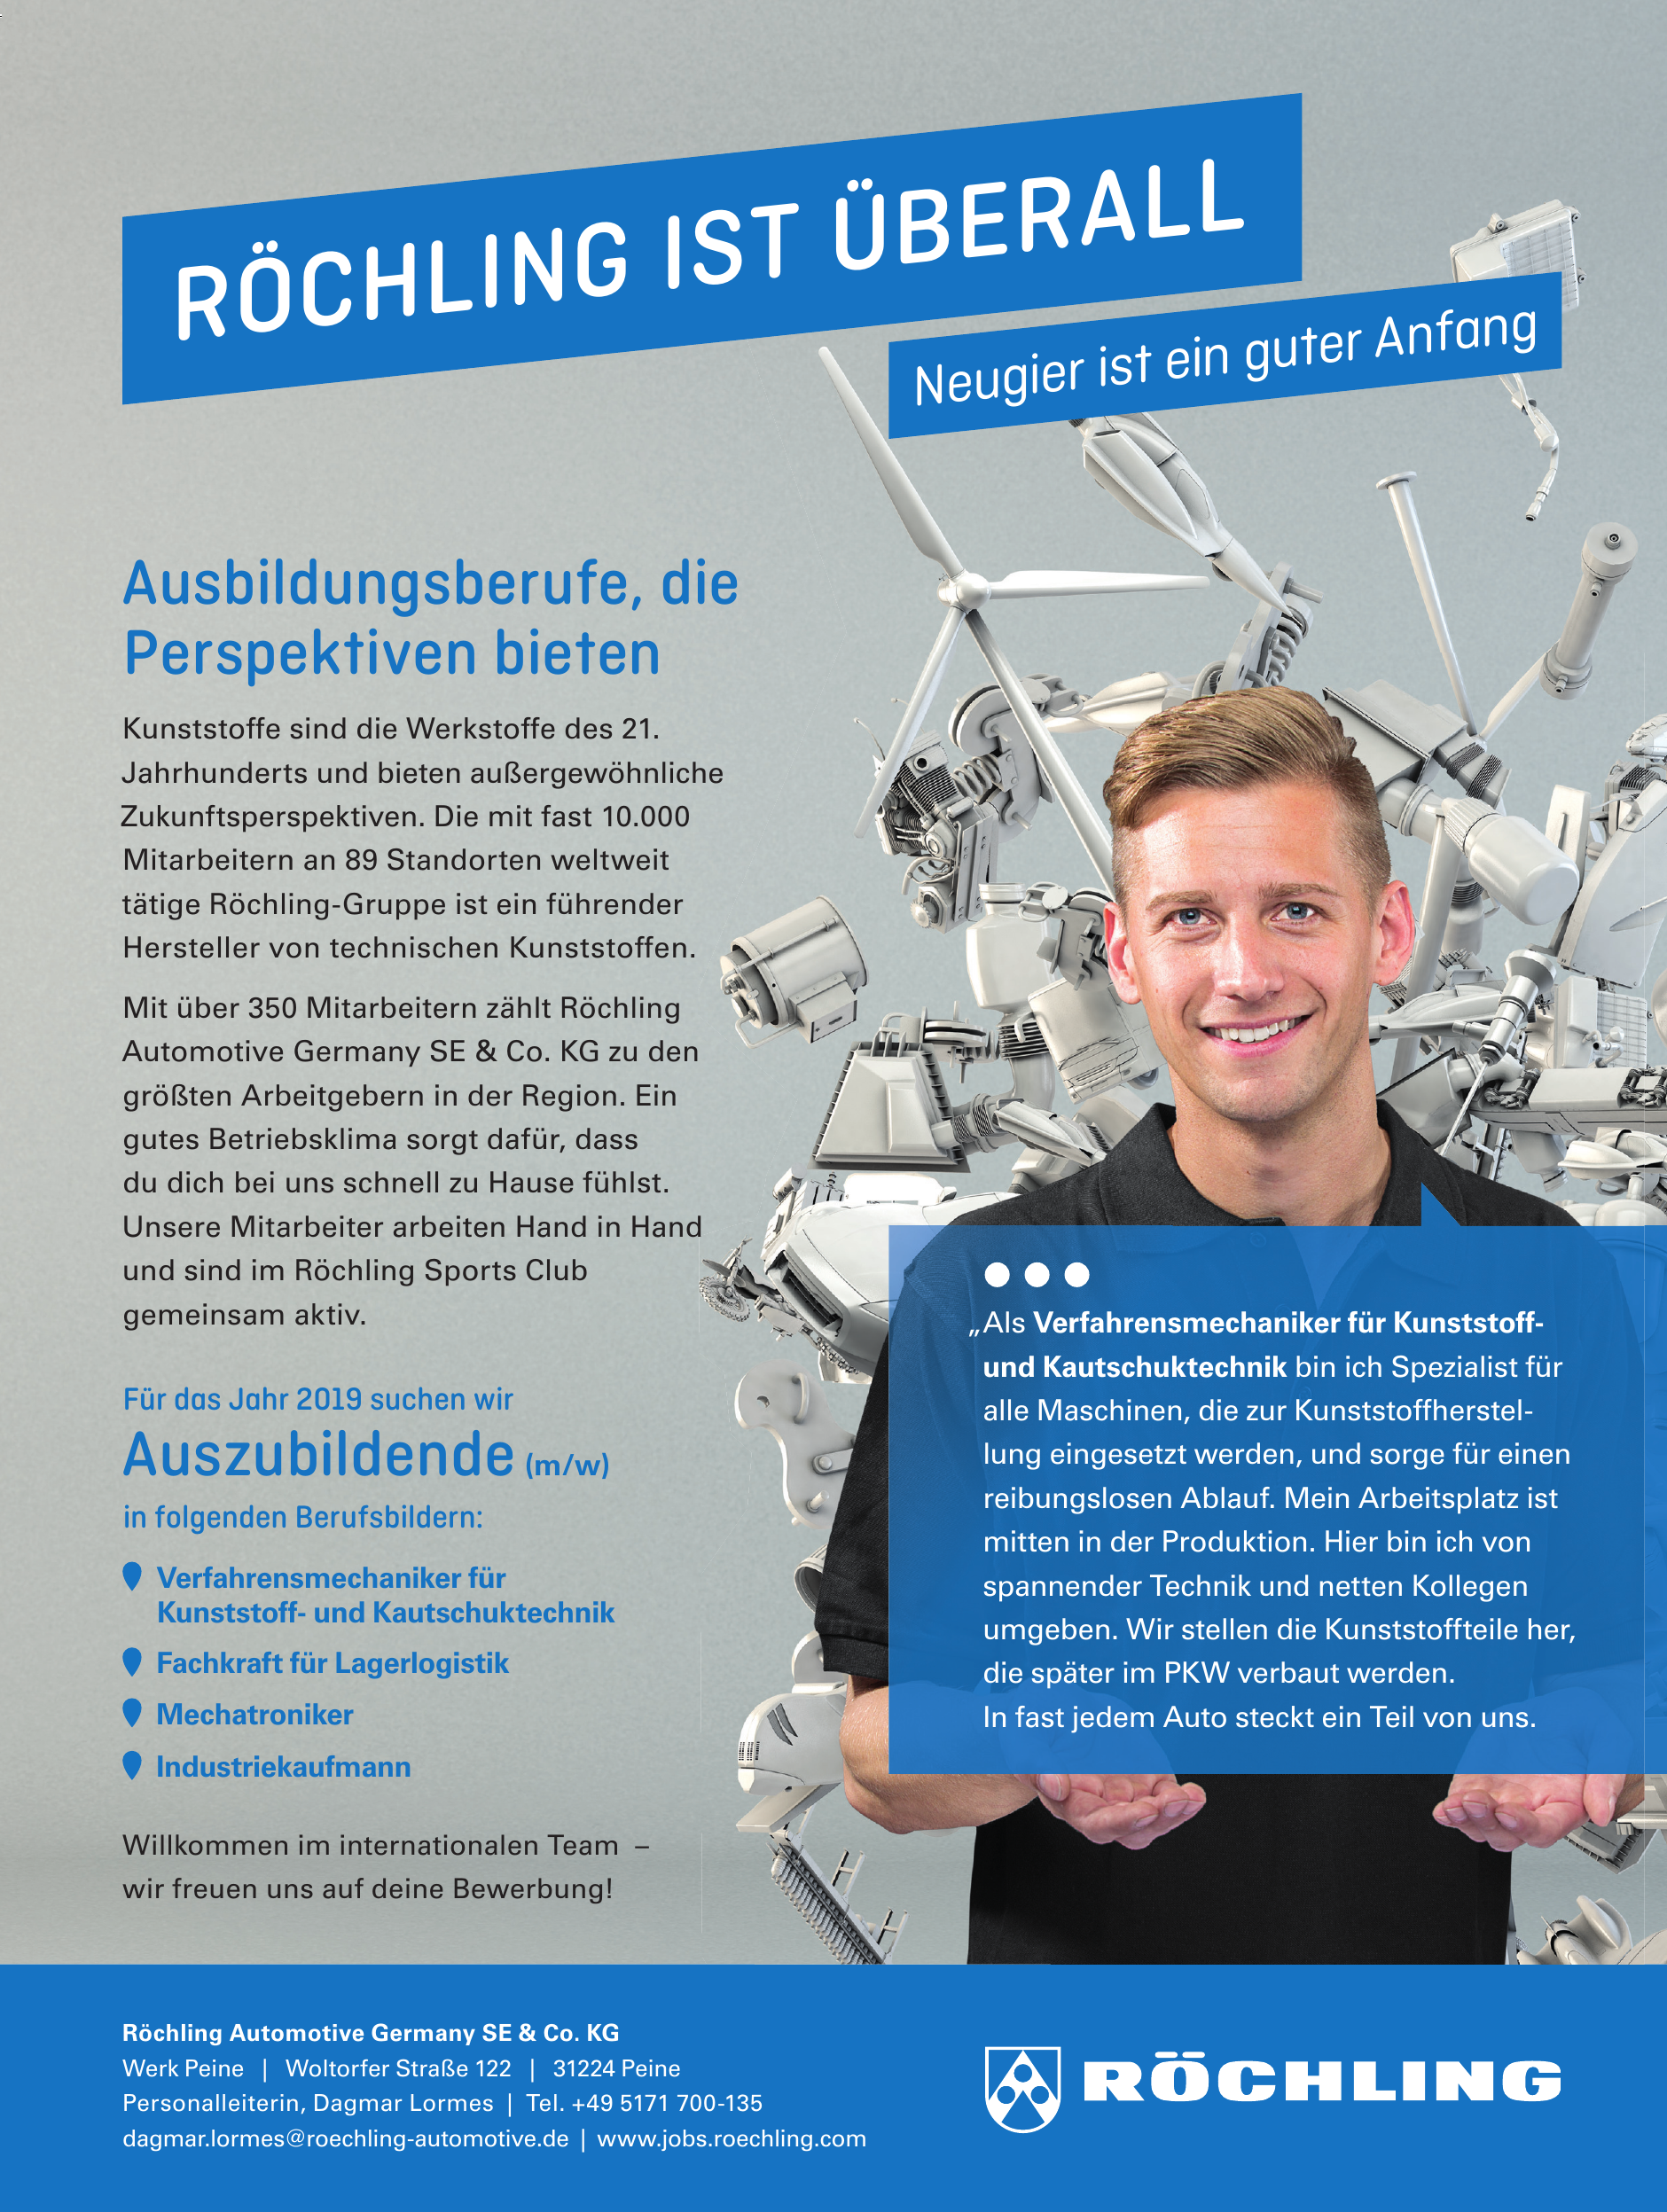 Röchling Automotive Germany SE & Co. KG